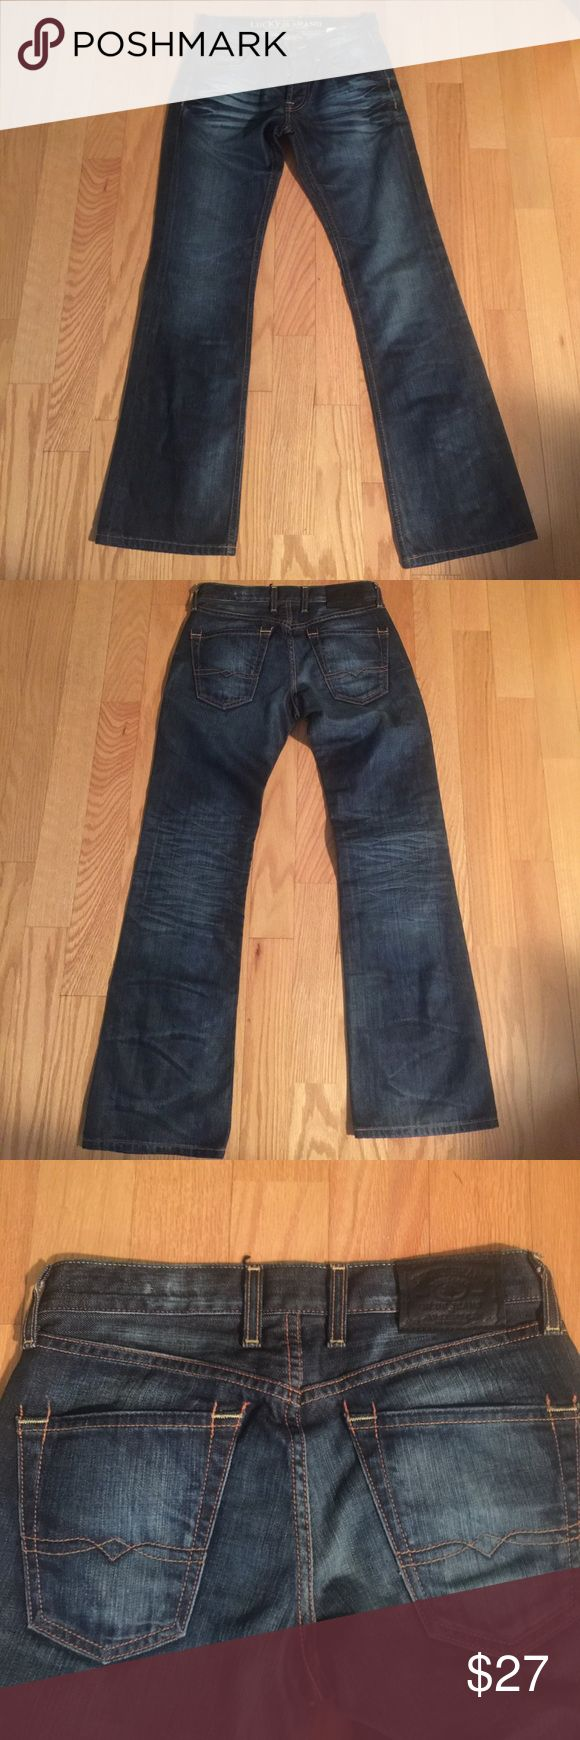 Lucky Brand Bootleg Jeans Slim fit button fly bootleg jeans. Sizr 28/30. The jeans has never been worn. It was used as the display item by the retailer (pic 6) Lucky Brand Jeans Boot Cut